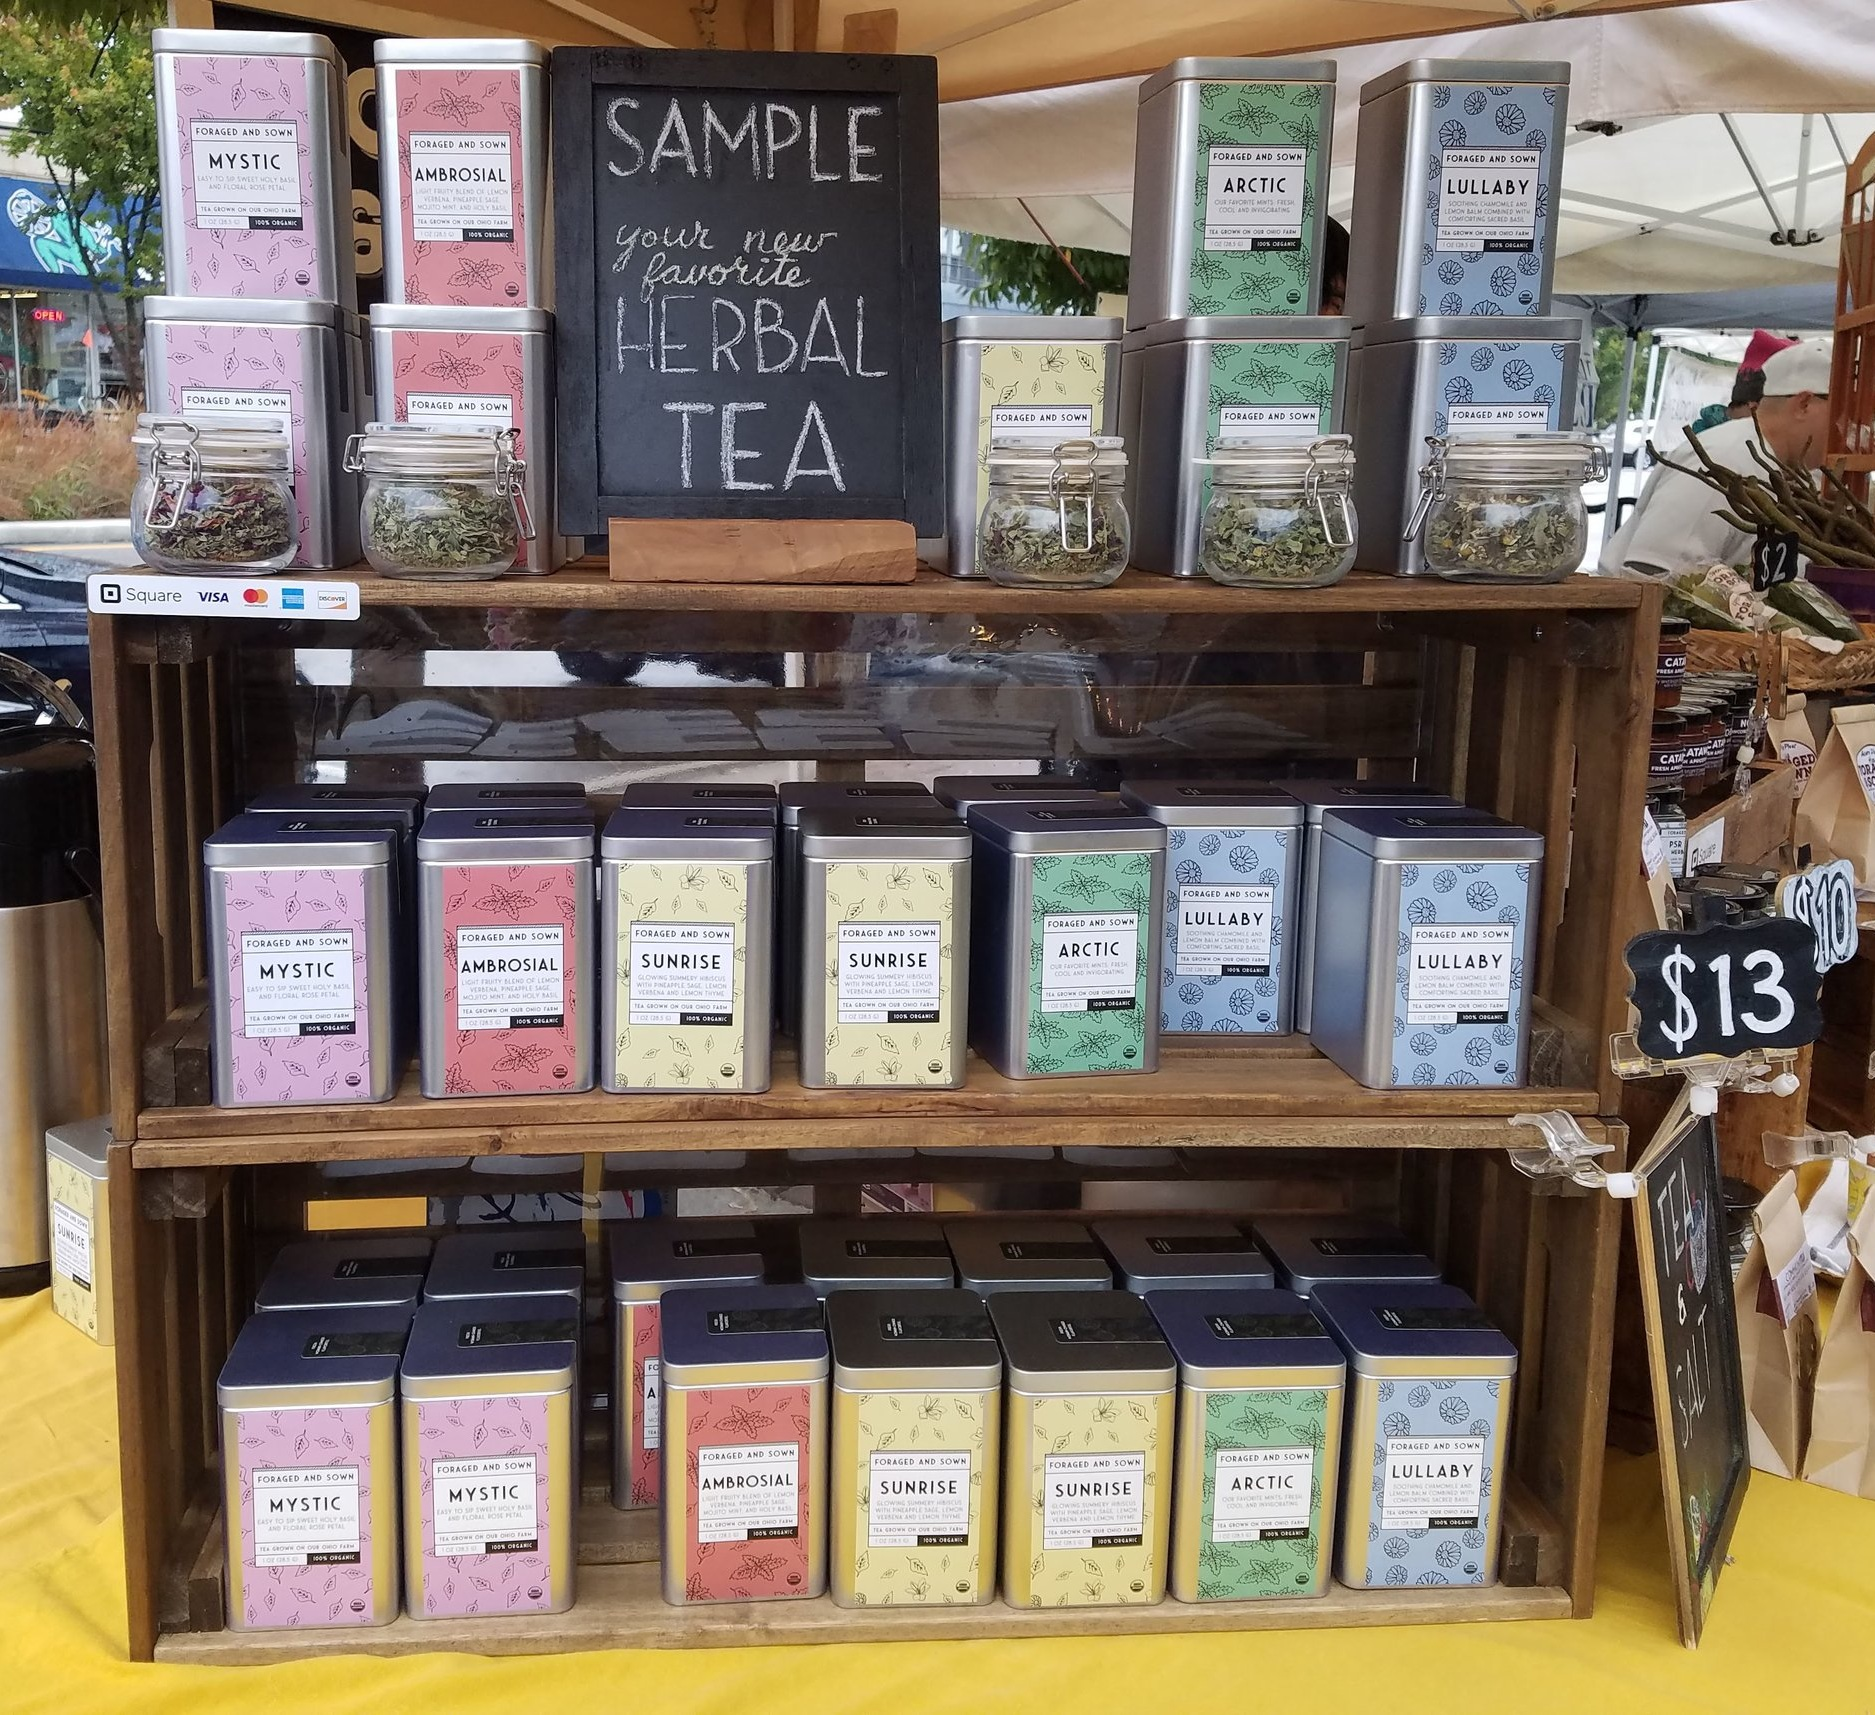 We dry, process, and package our certified organic farm-grown herbs into fresh, flavor-packed herbal teas.